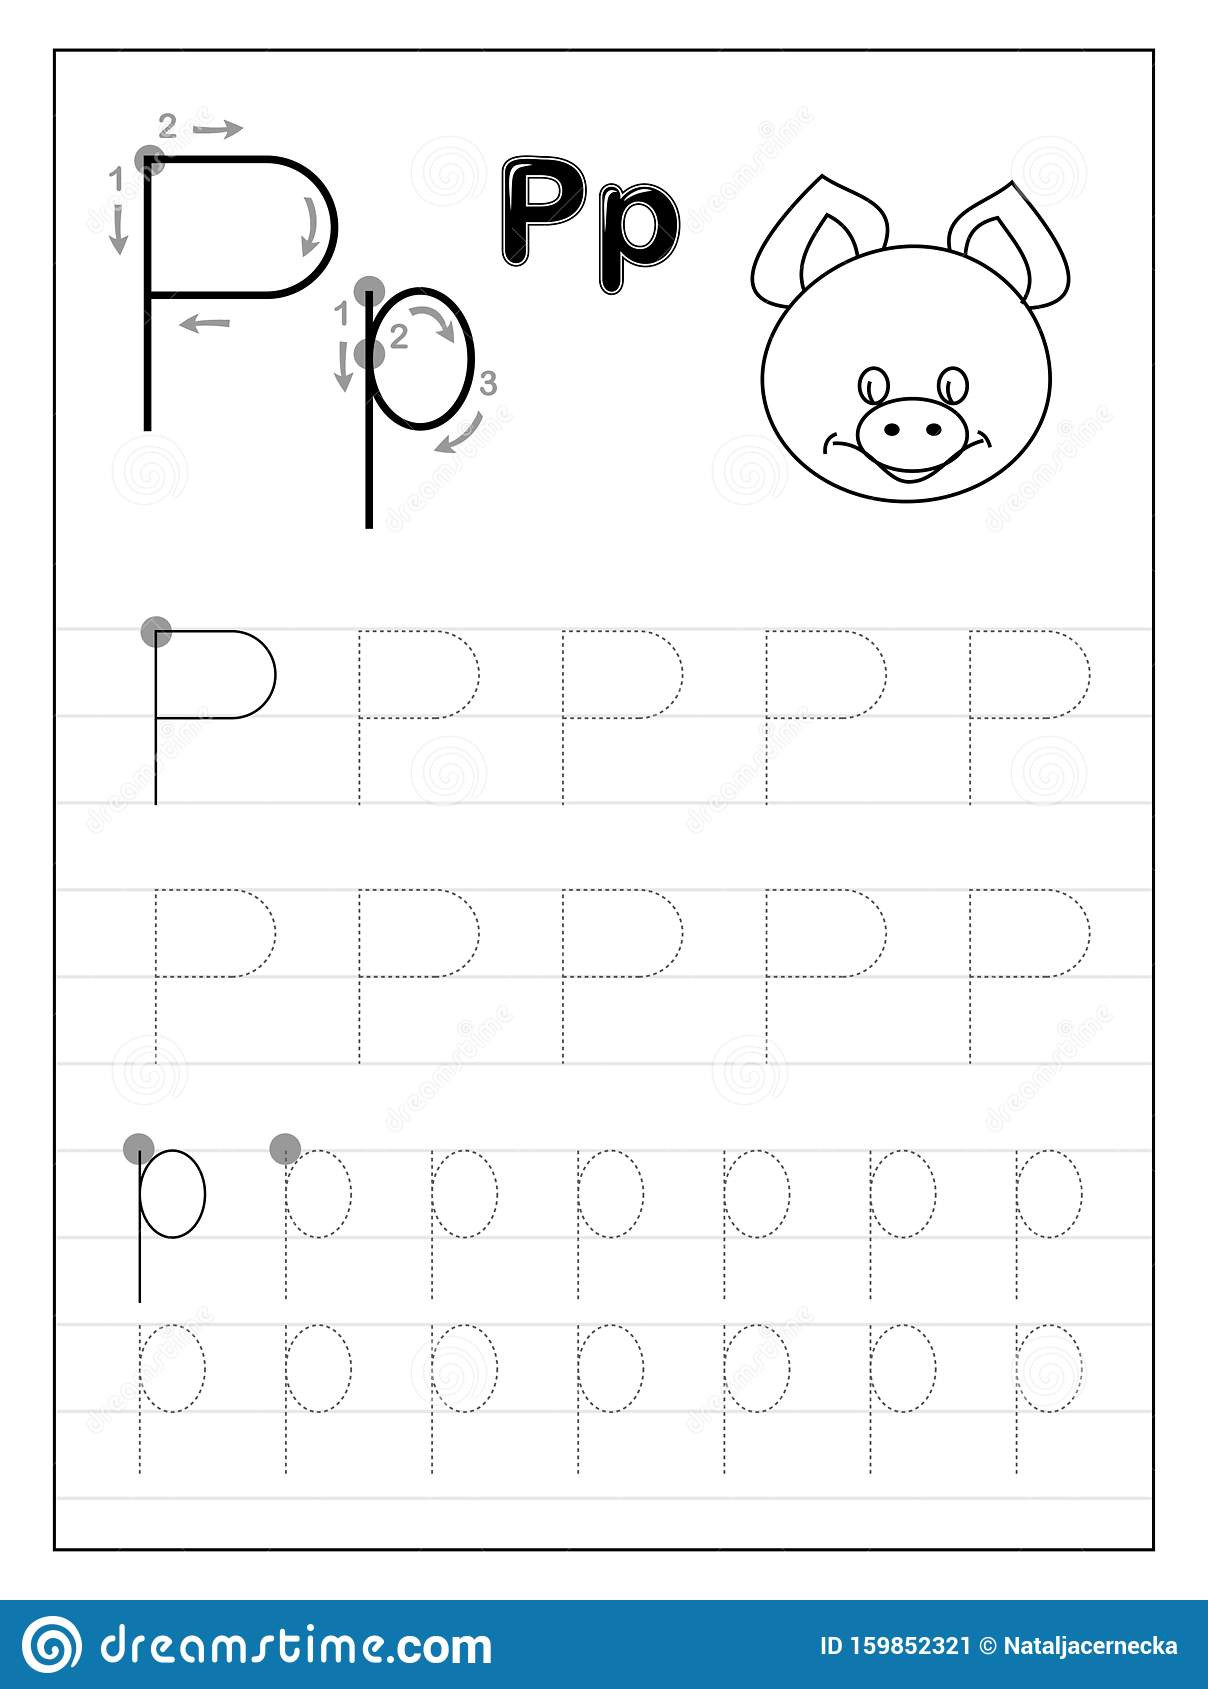 Letter P Worksheets Preschool Tracing Alphabet Letter P Black and White Educational Pages